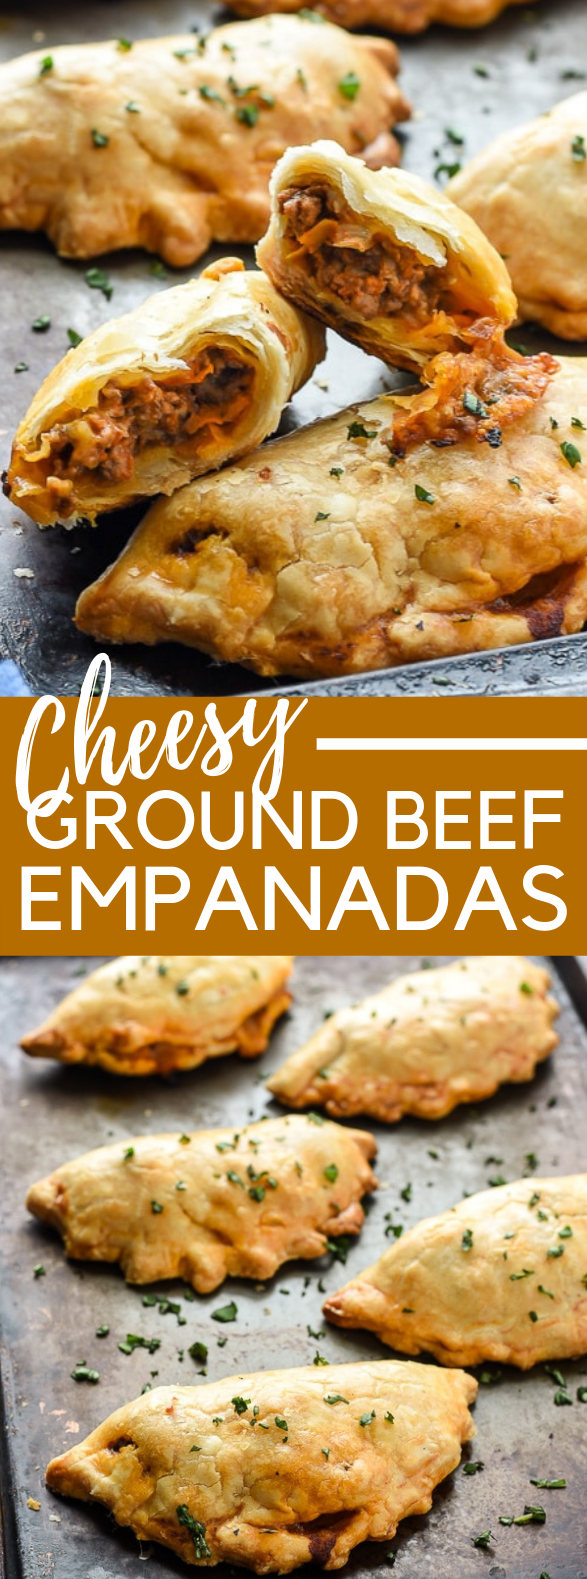 Cheesy Ground Beef Empanadas #dinner #summer